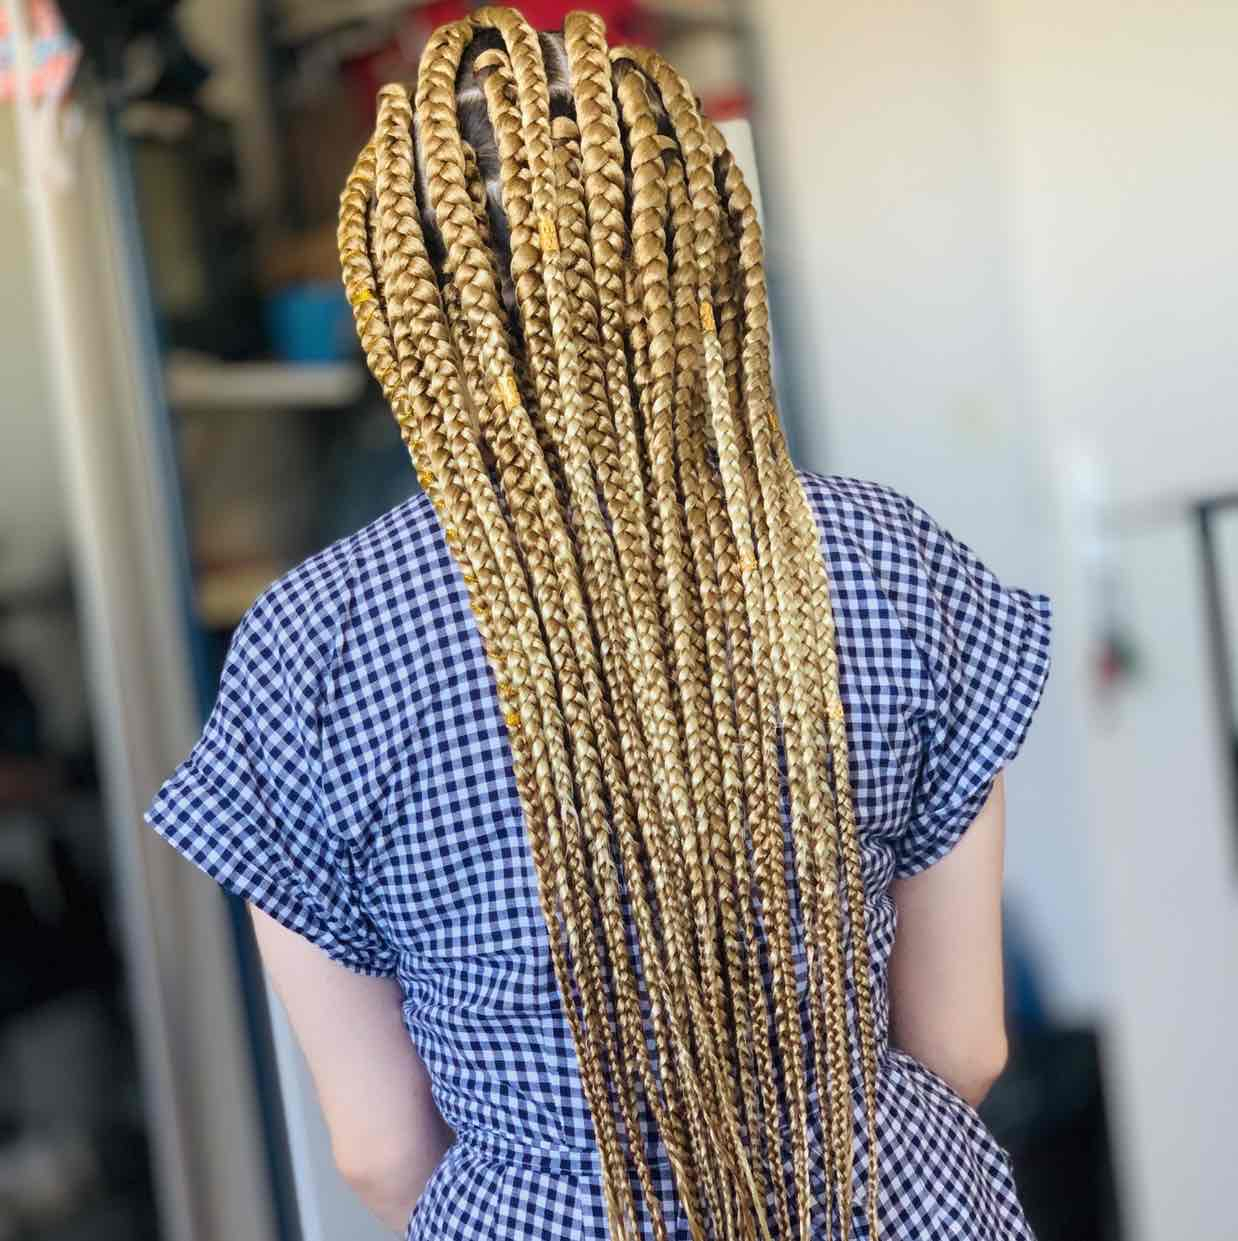 salon de coiffure afro tresse tresses box braids crochet braids vanilles tissages paris 75 77 78 91 92 93 94 95 GOTOWYAD